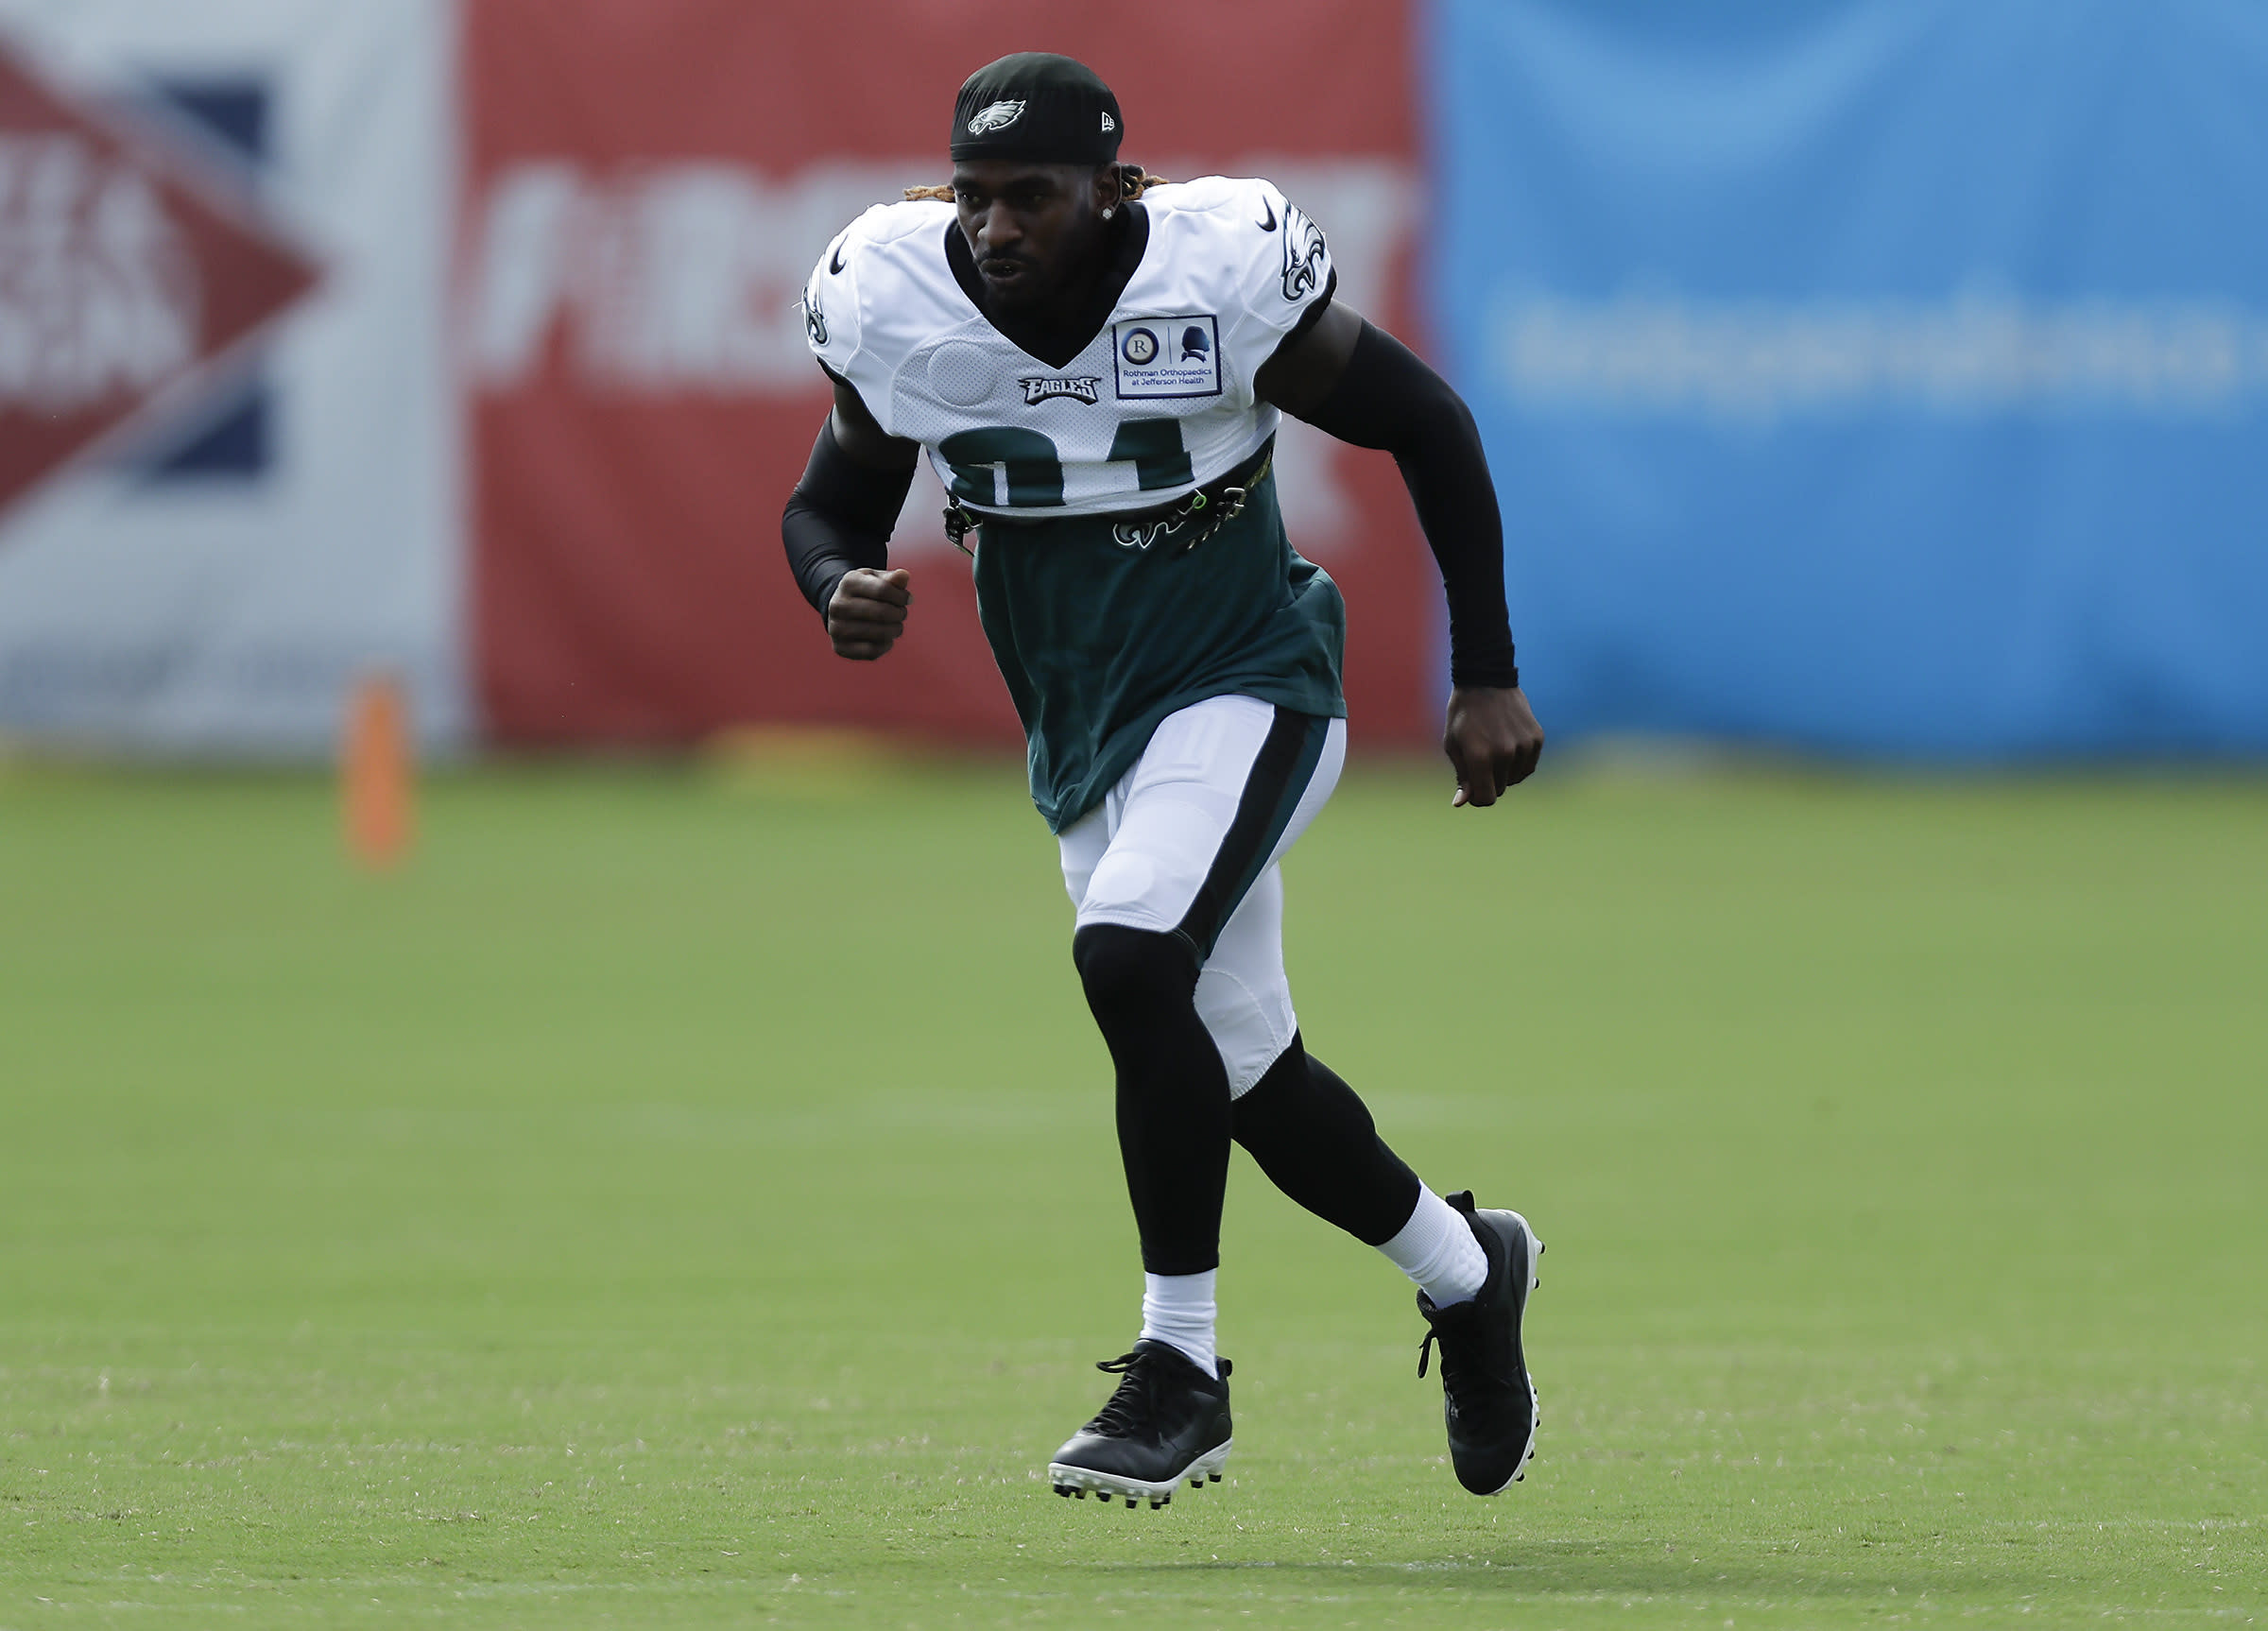 Philadelphia Eagles cornerback Nickell Robey-Coleman runs during an NFL football training camp practice in Philadelphia, Monday, Aug. 24, 2020. (Yong Kim/Pool Photo via AP)